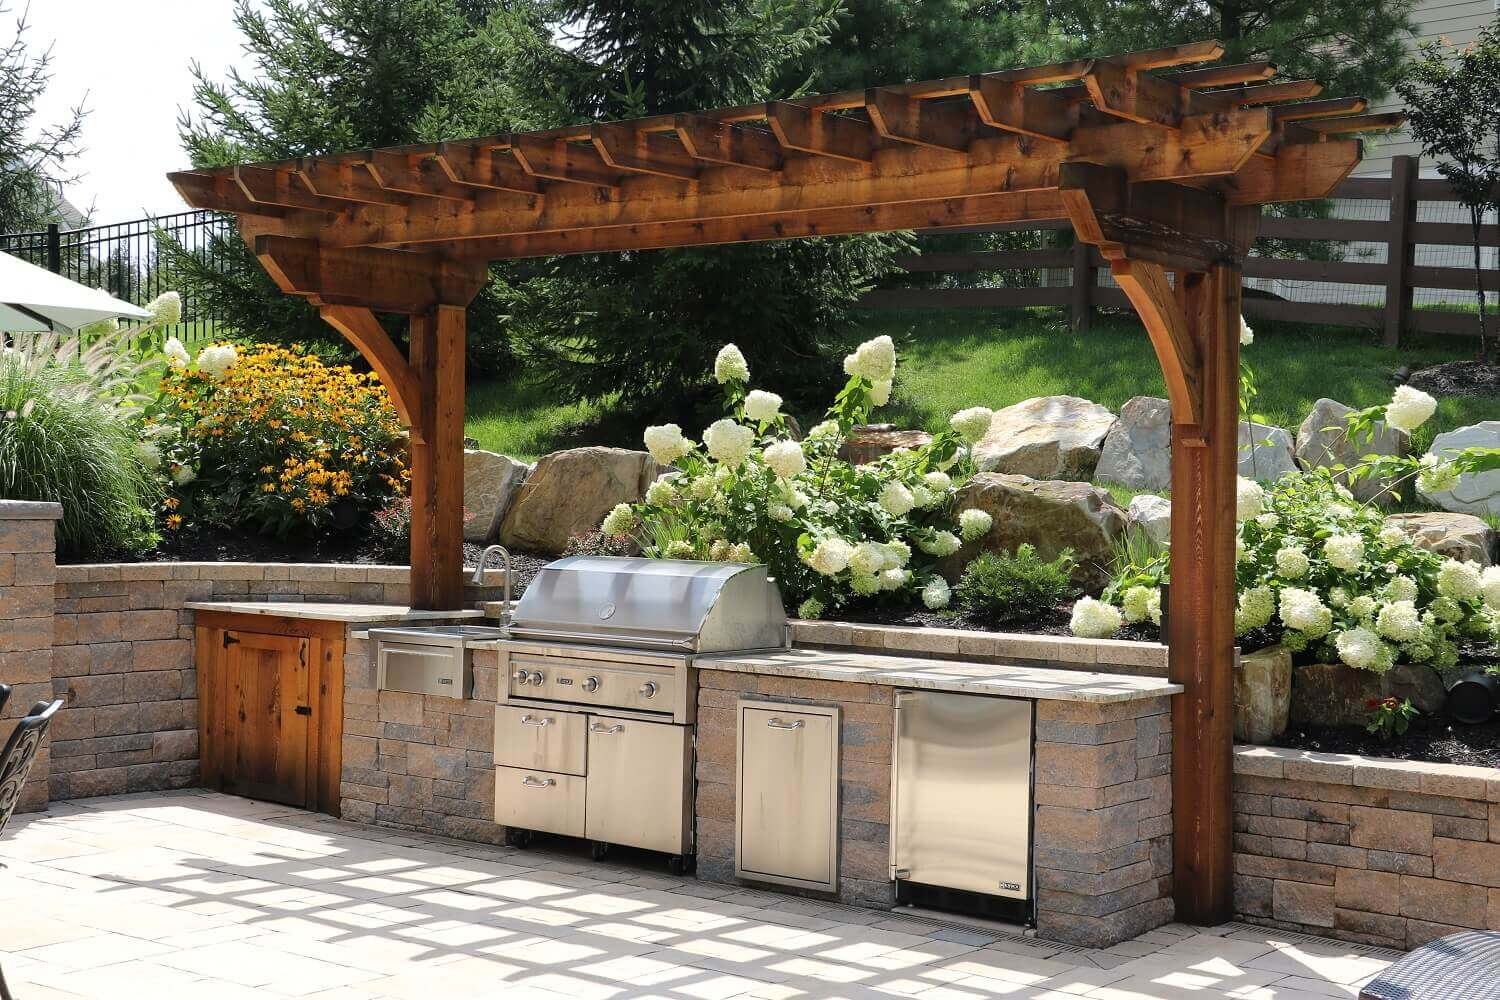 Kitchens grills burkholder landscape for Outdoor grill cabinet design